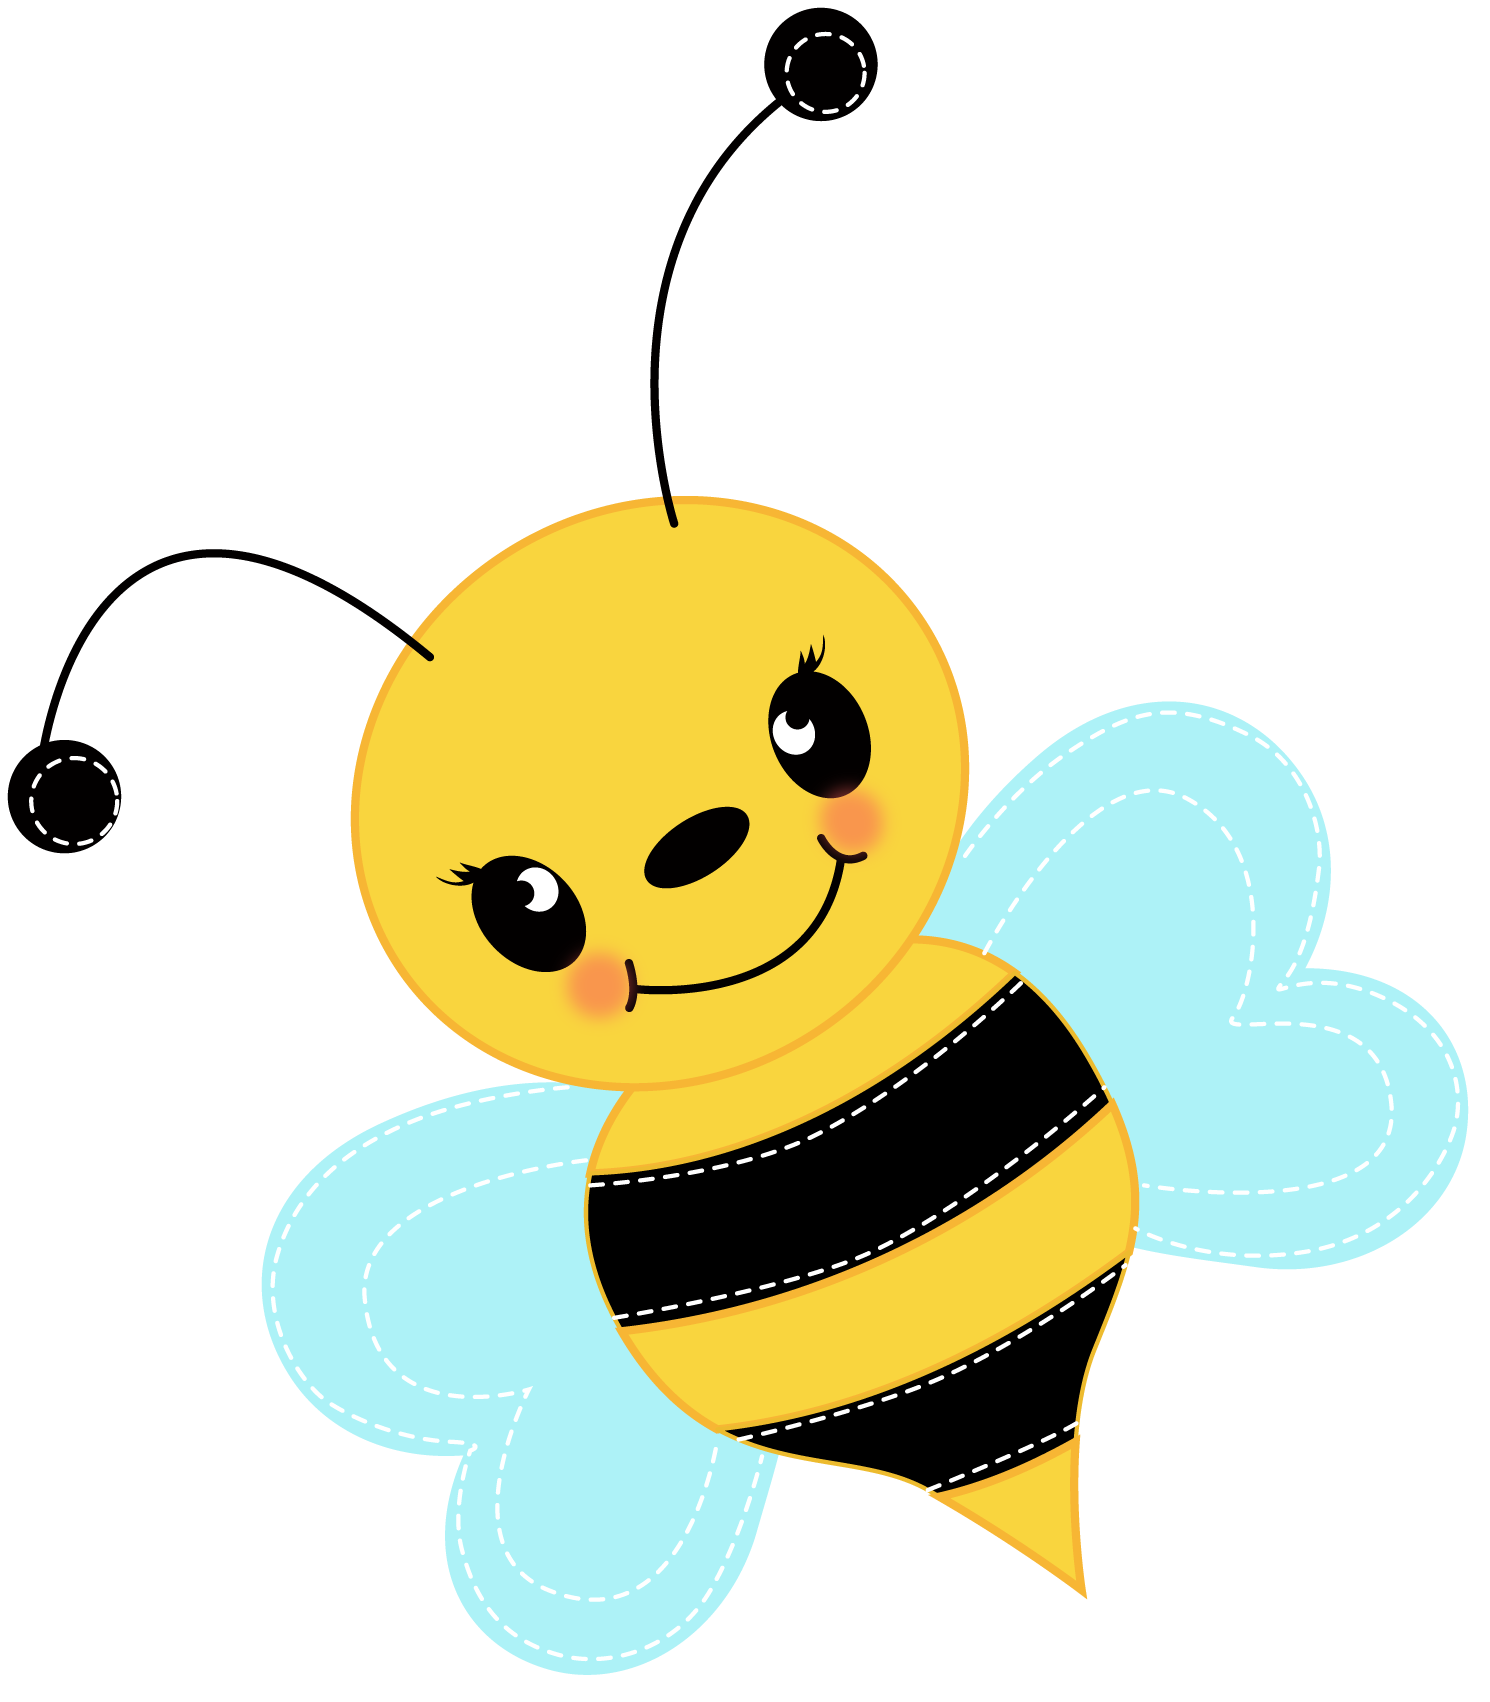 cute baby bee clipart clipart panda free clipart images Bee Outline Vector Black and White Bee Vector